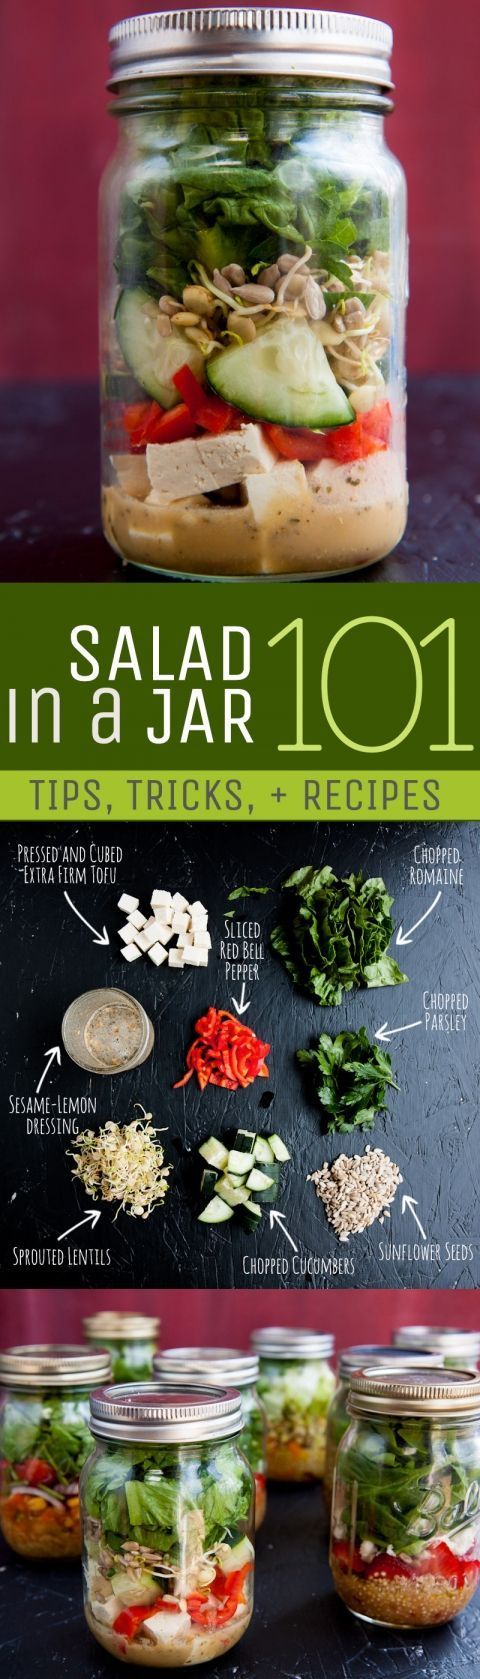 Salad in a Jar 101